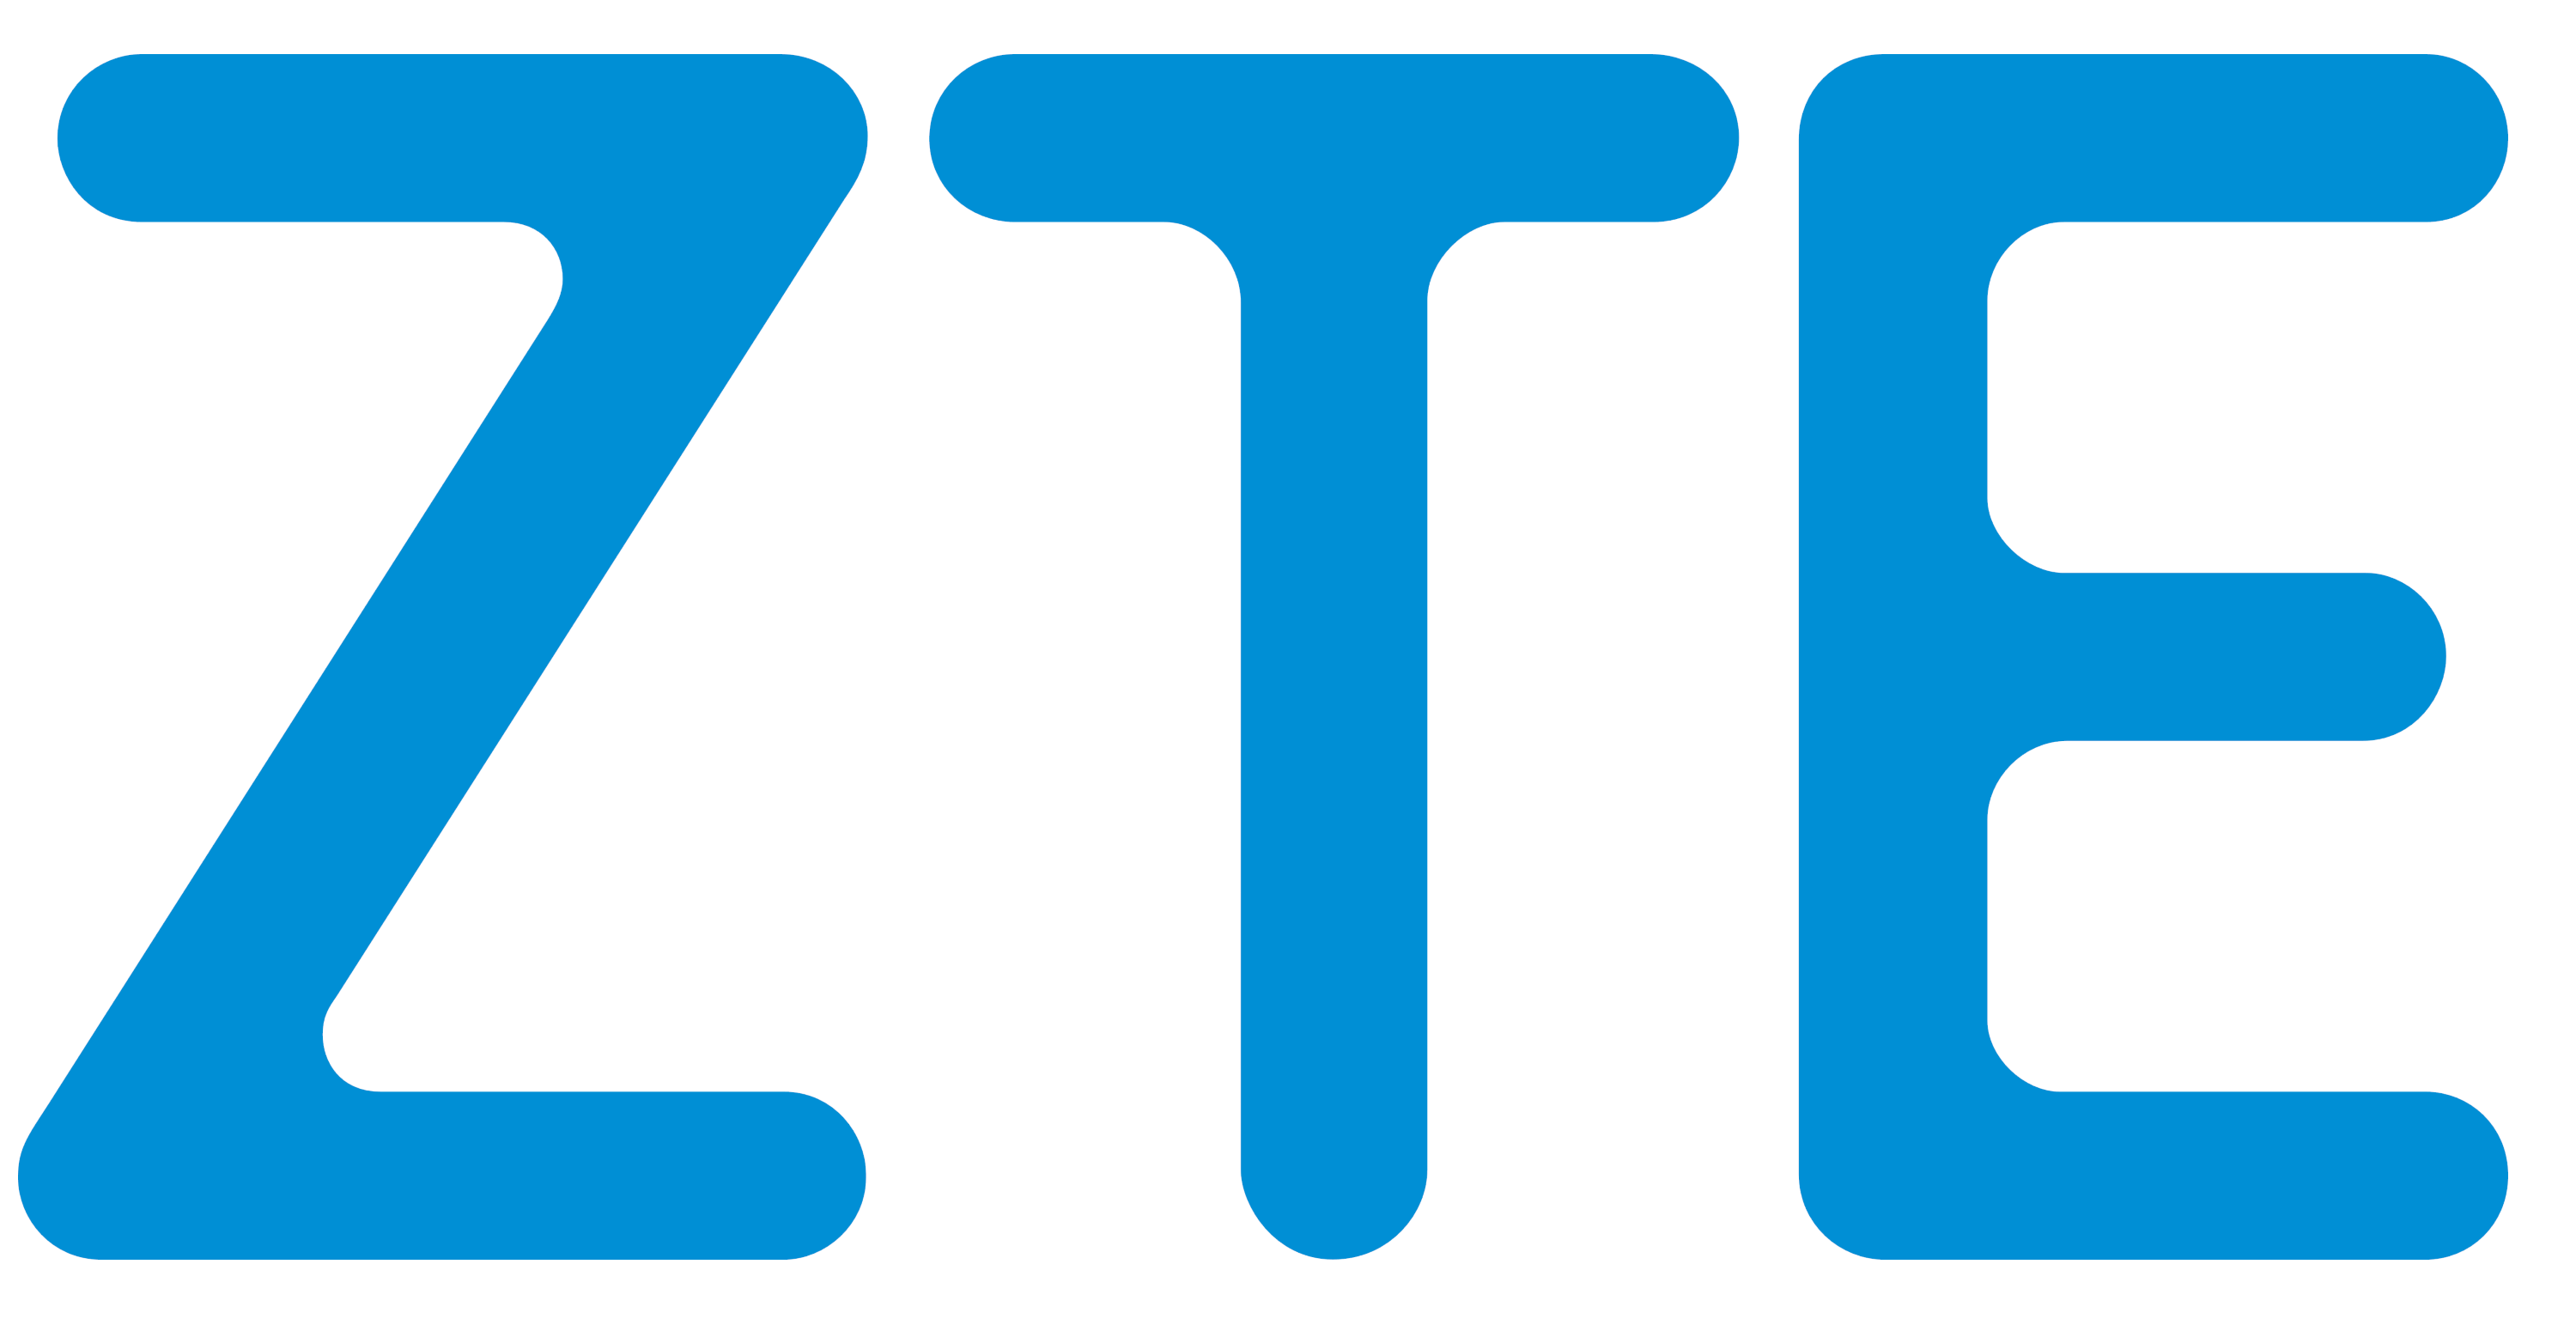 Zte Logo Png ZTE shows off s...